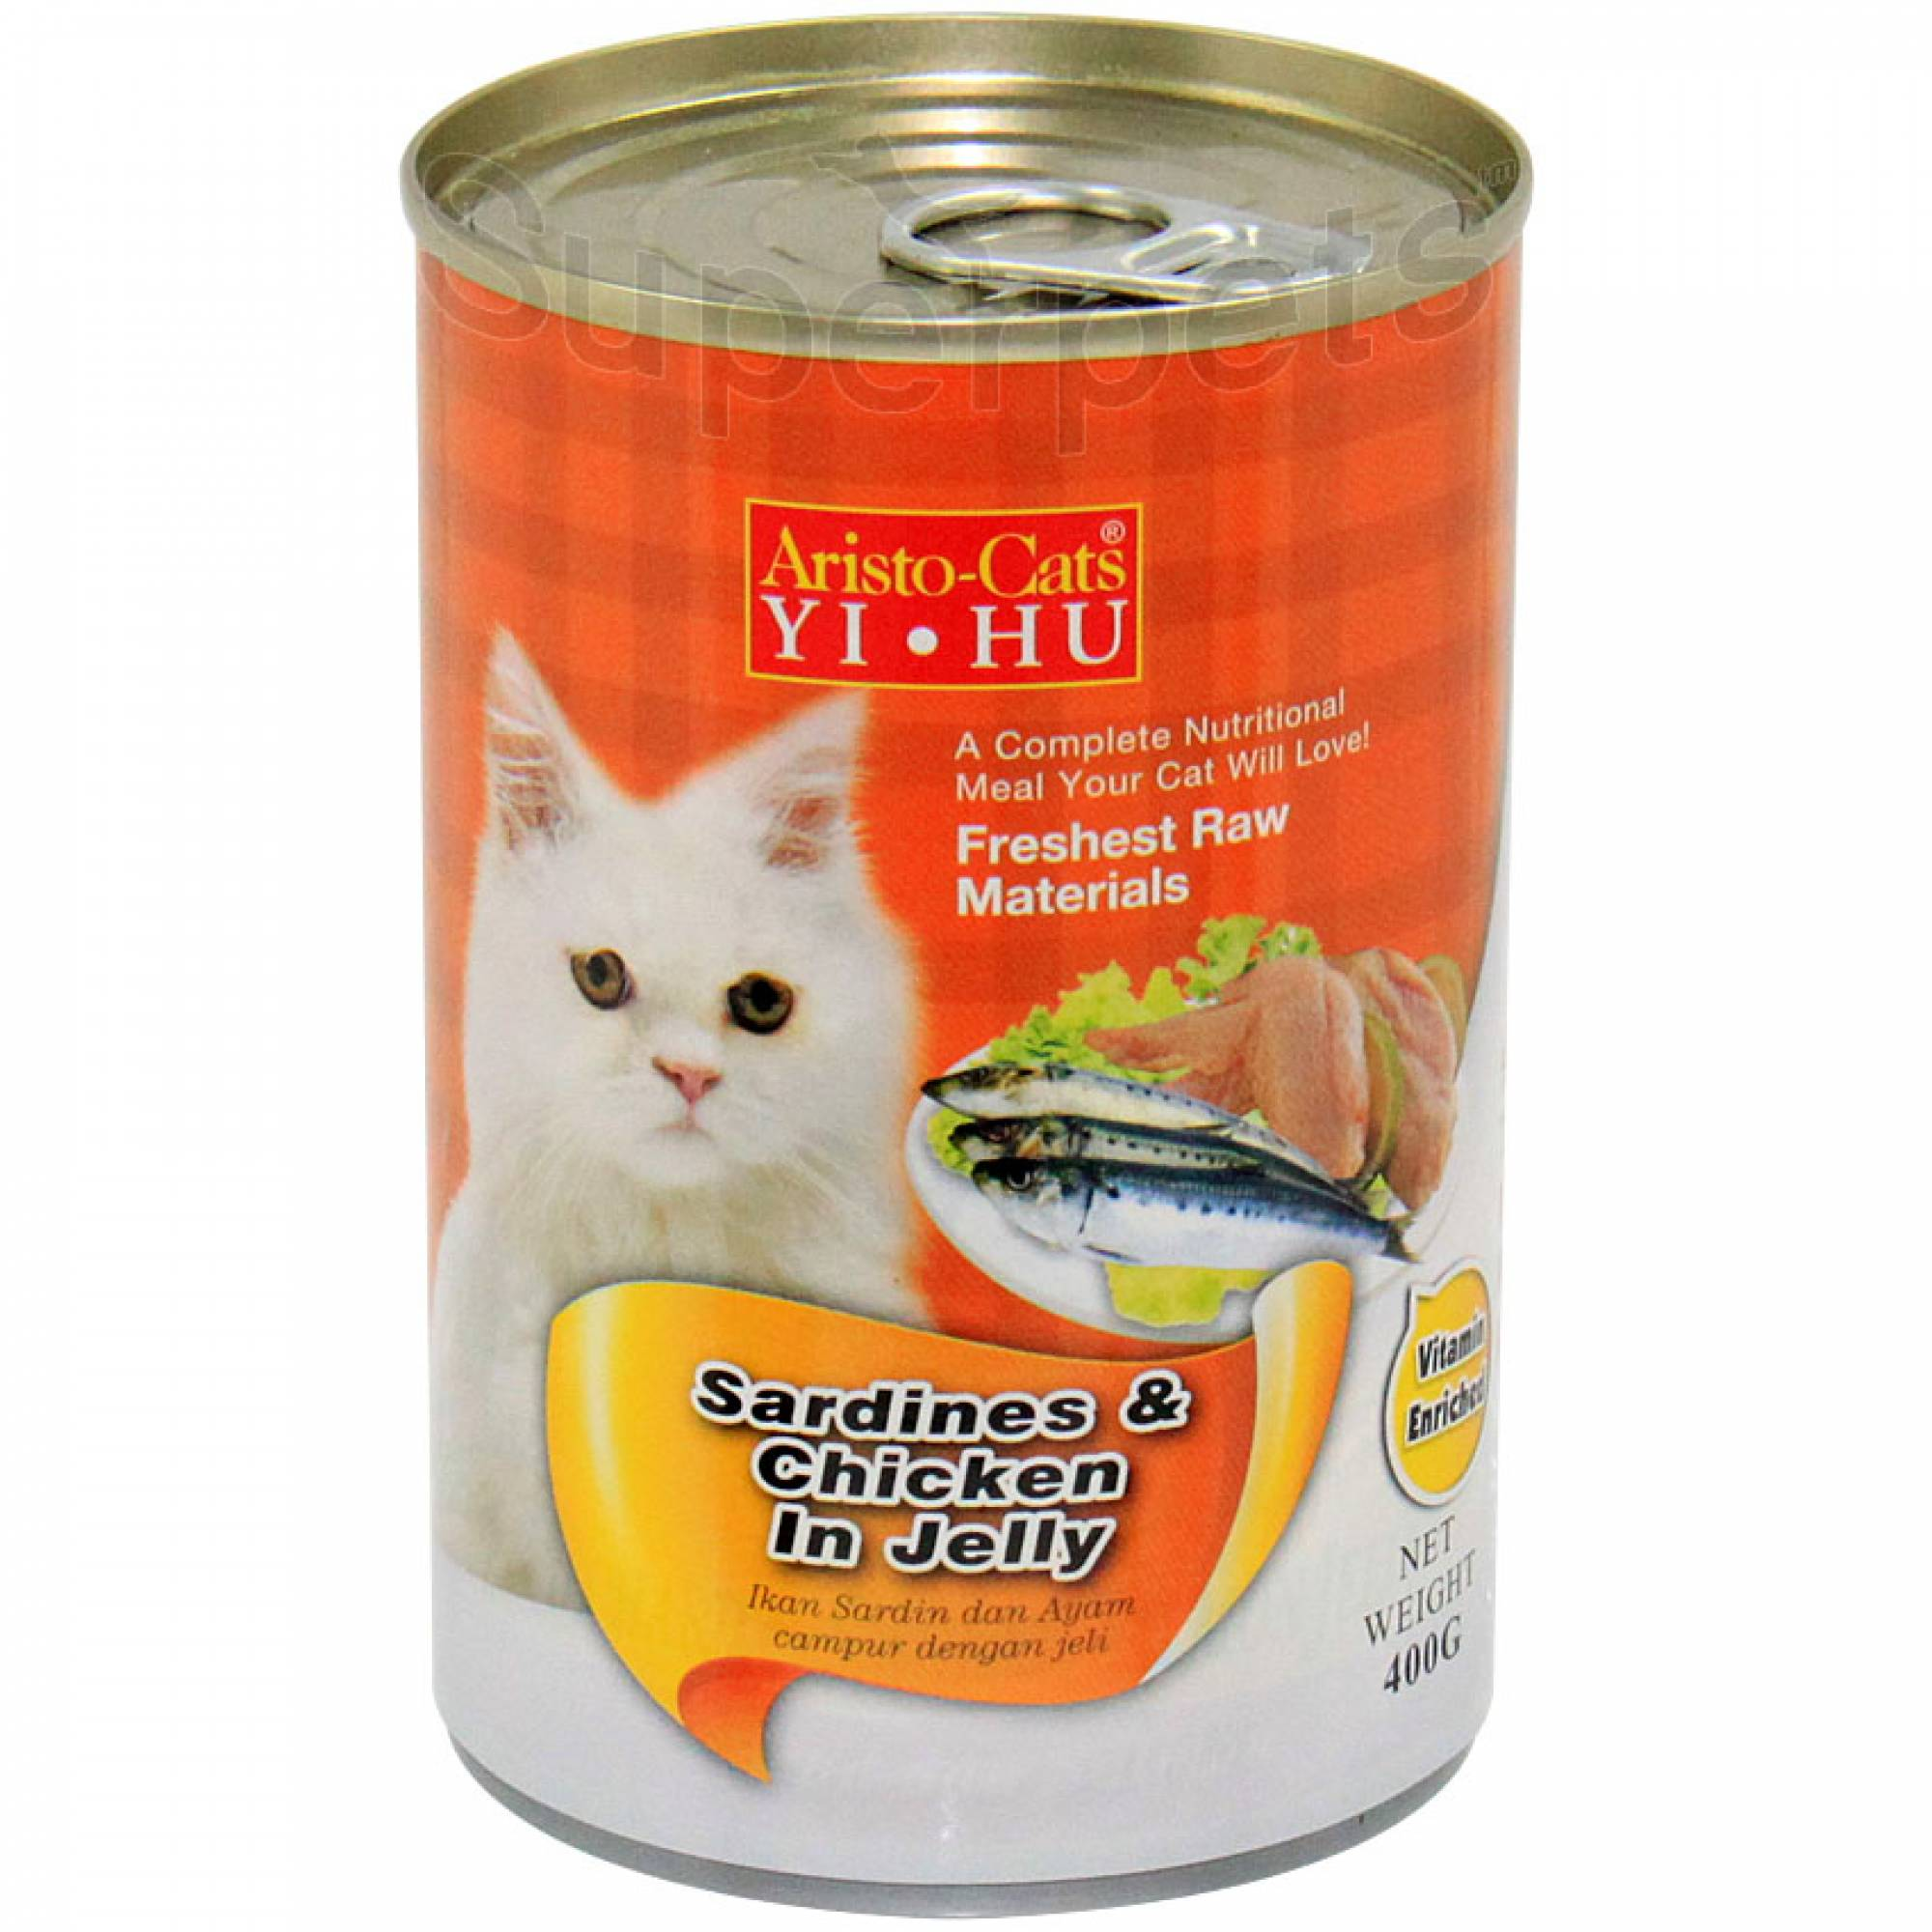 Aristo-Cats - Sardines and Chicken in Jelly 400g x 24pcs (1 carton)